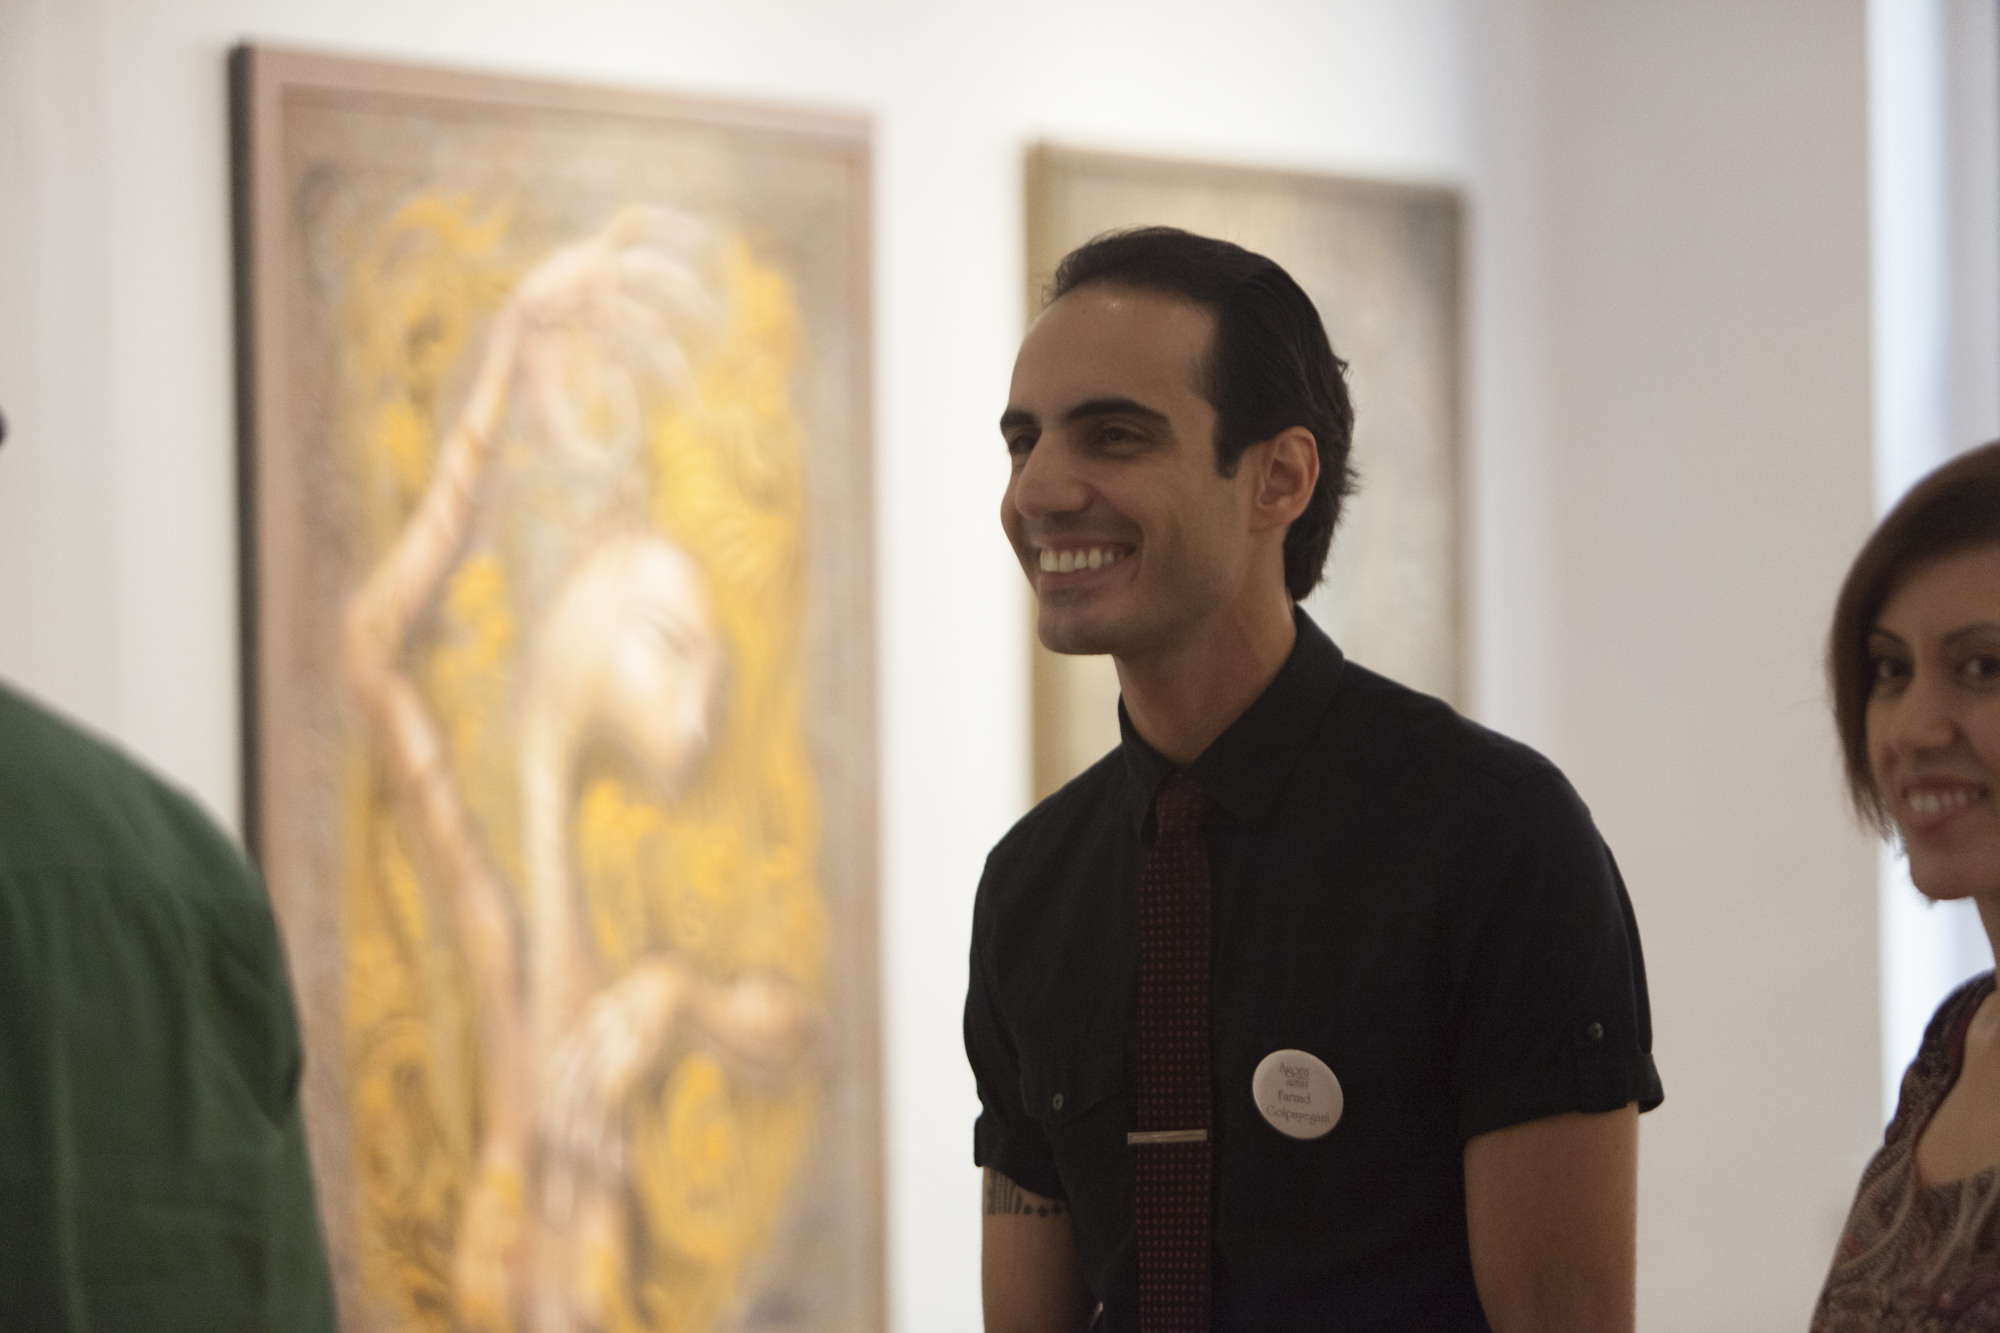 Farzad Golpayegani at the August 27 Reception